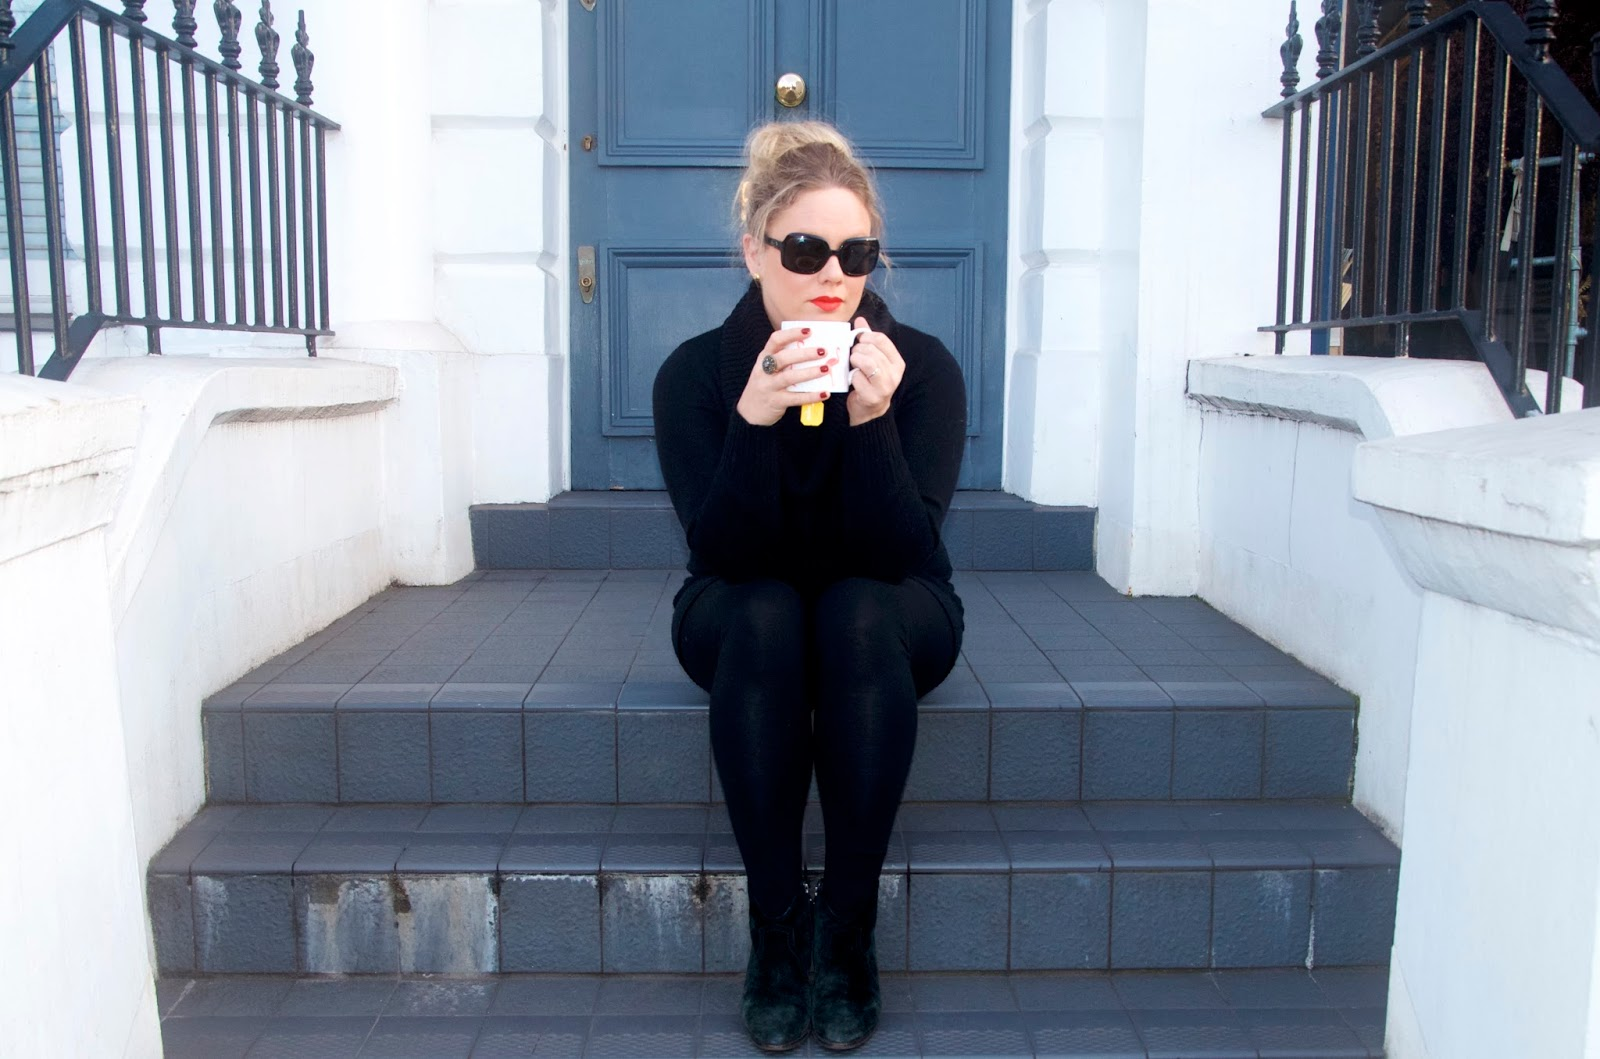 Drinking tea on the steps